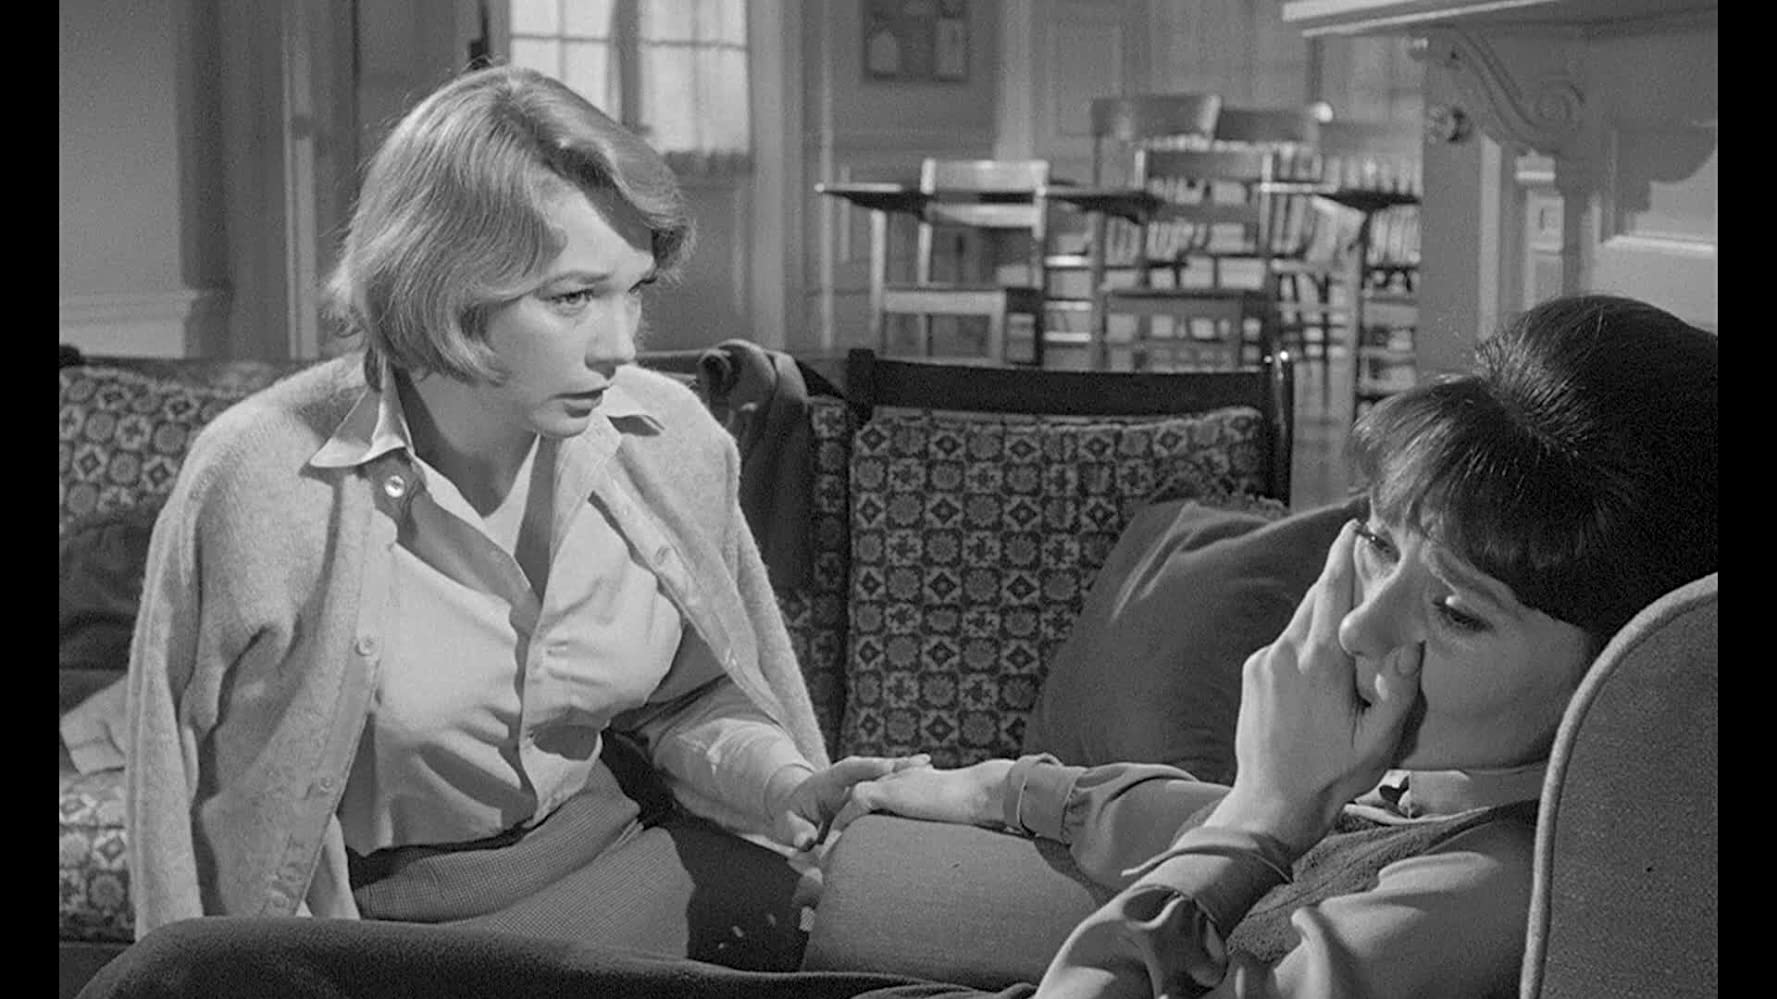 Audrey Hepburn and Shirley MacLaine in The Children's Hour (1961)